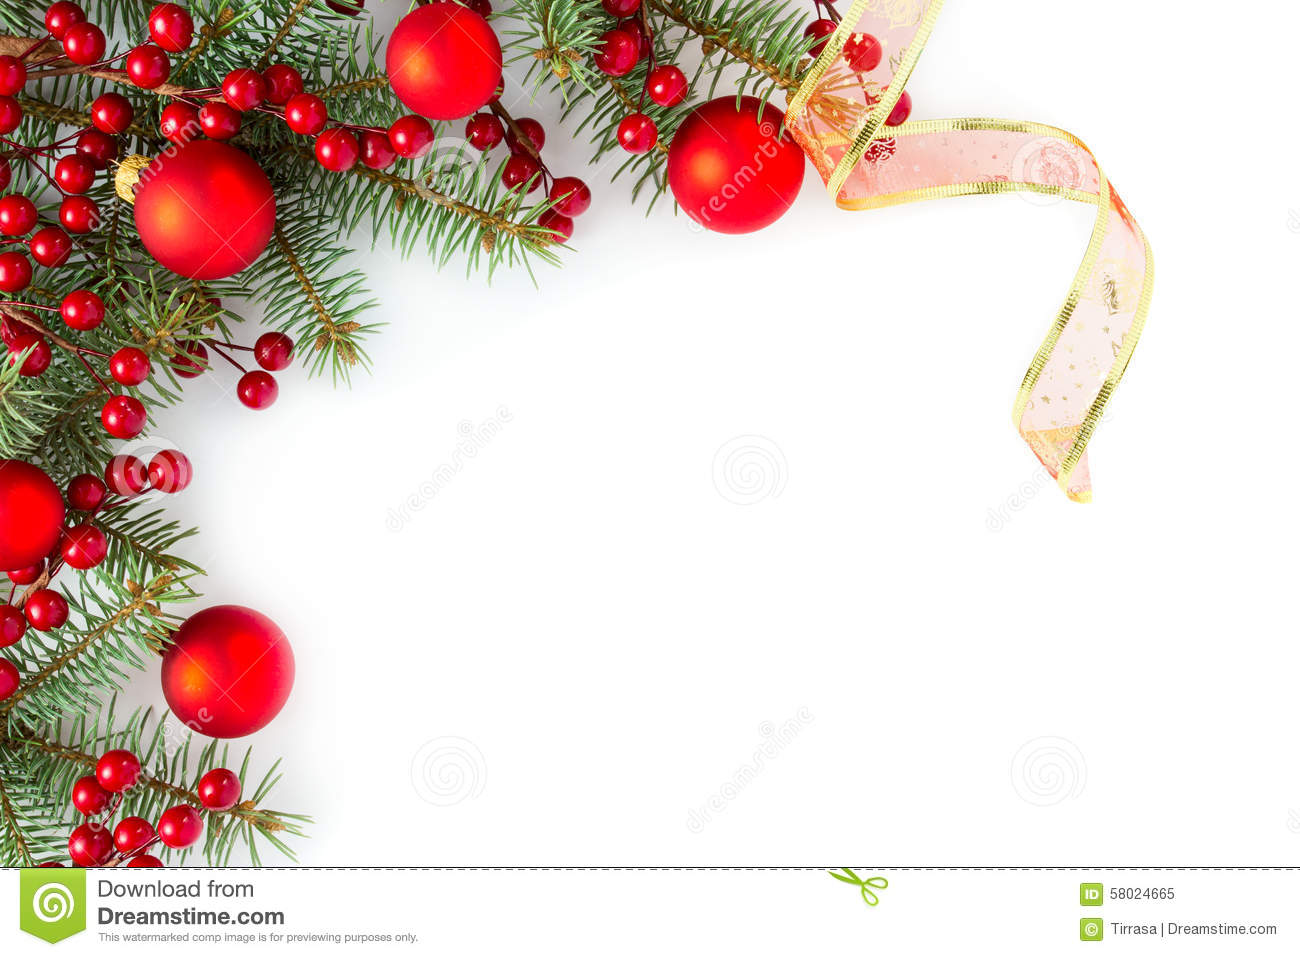 Christmas Stock Photos, Images, & Pictures - 1,398,229 Images